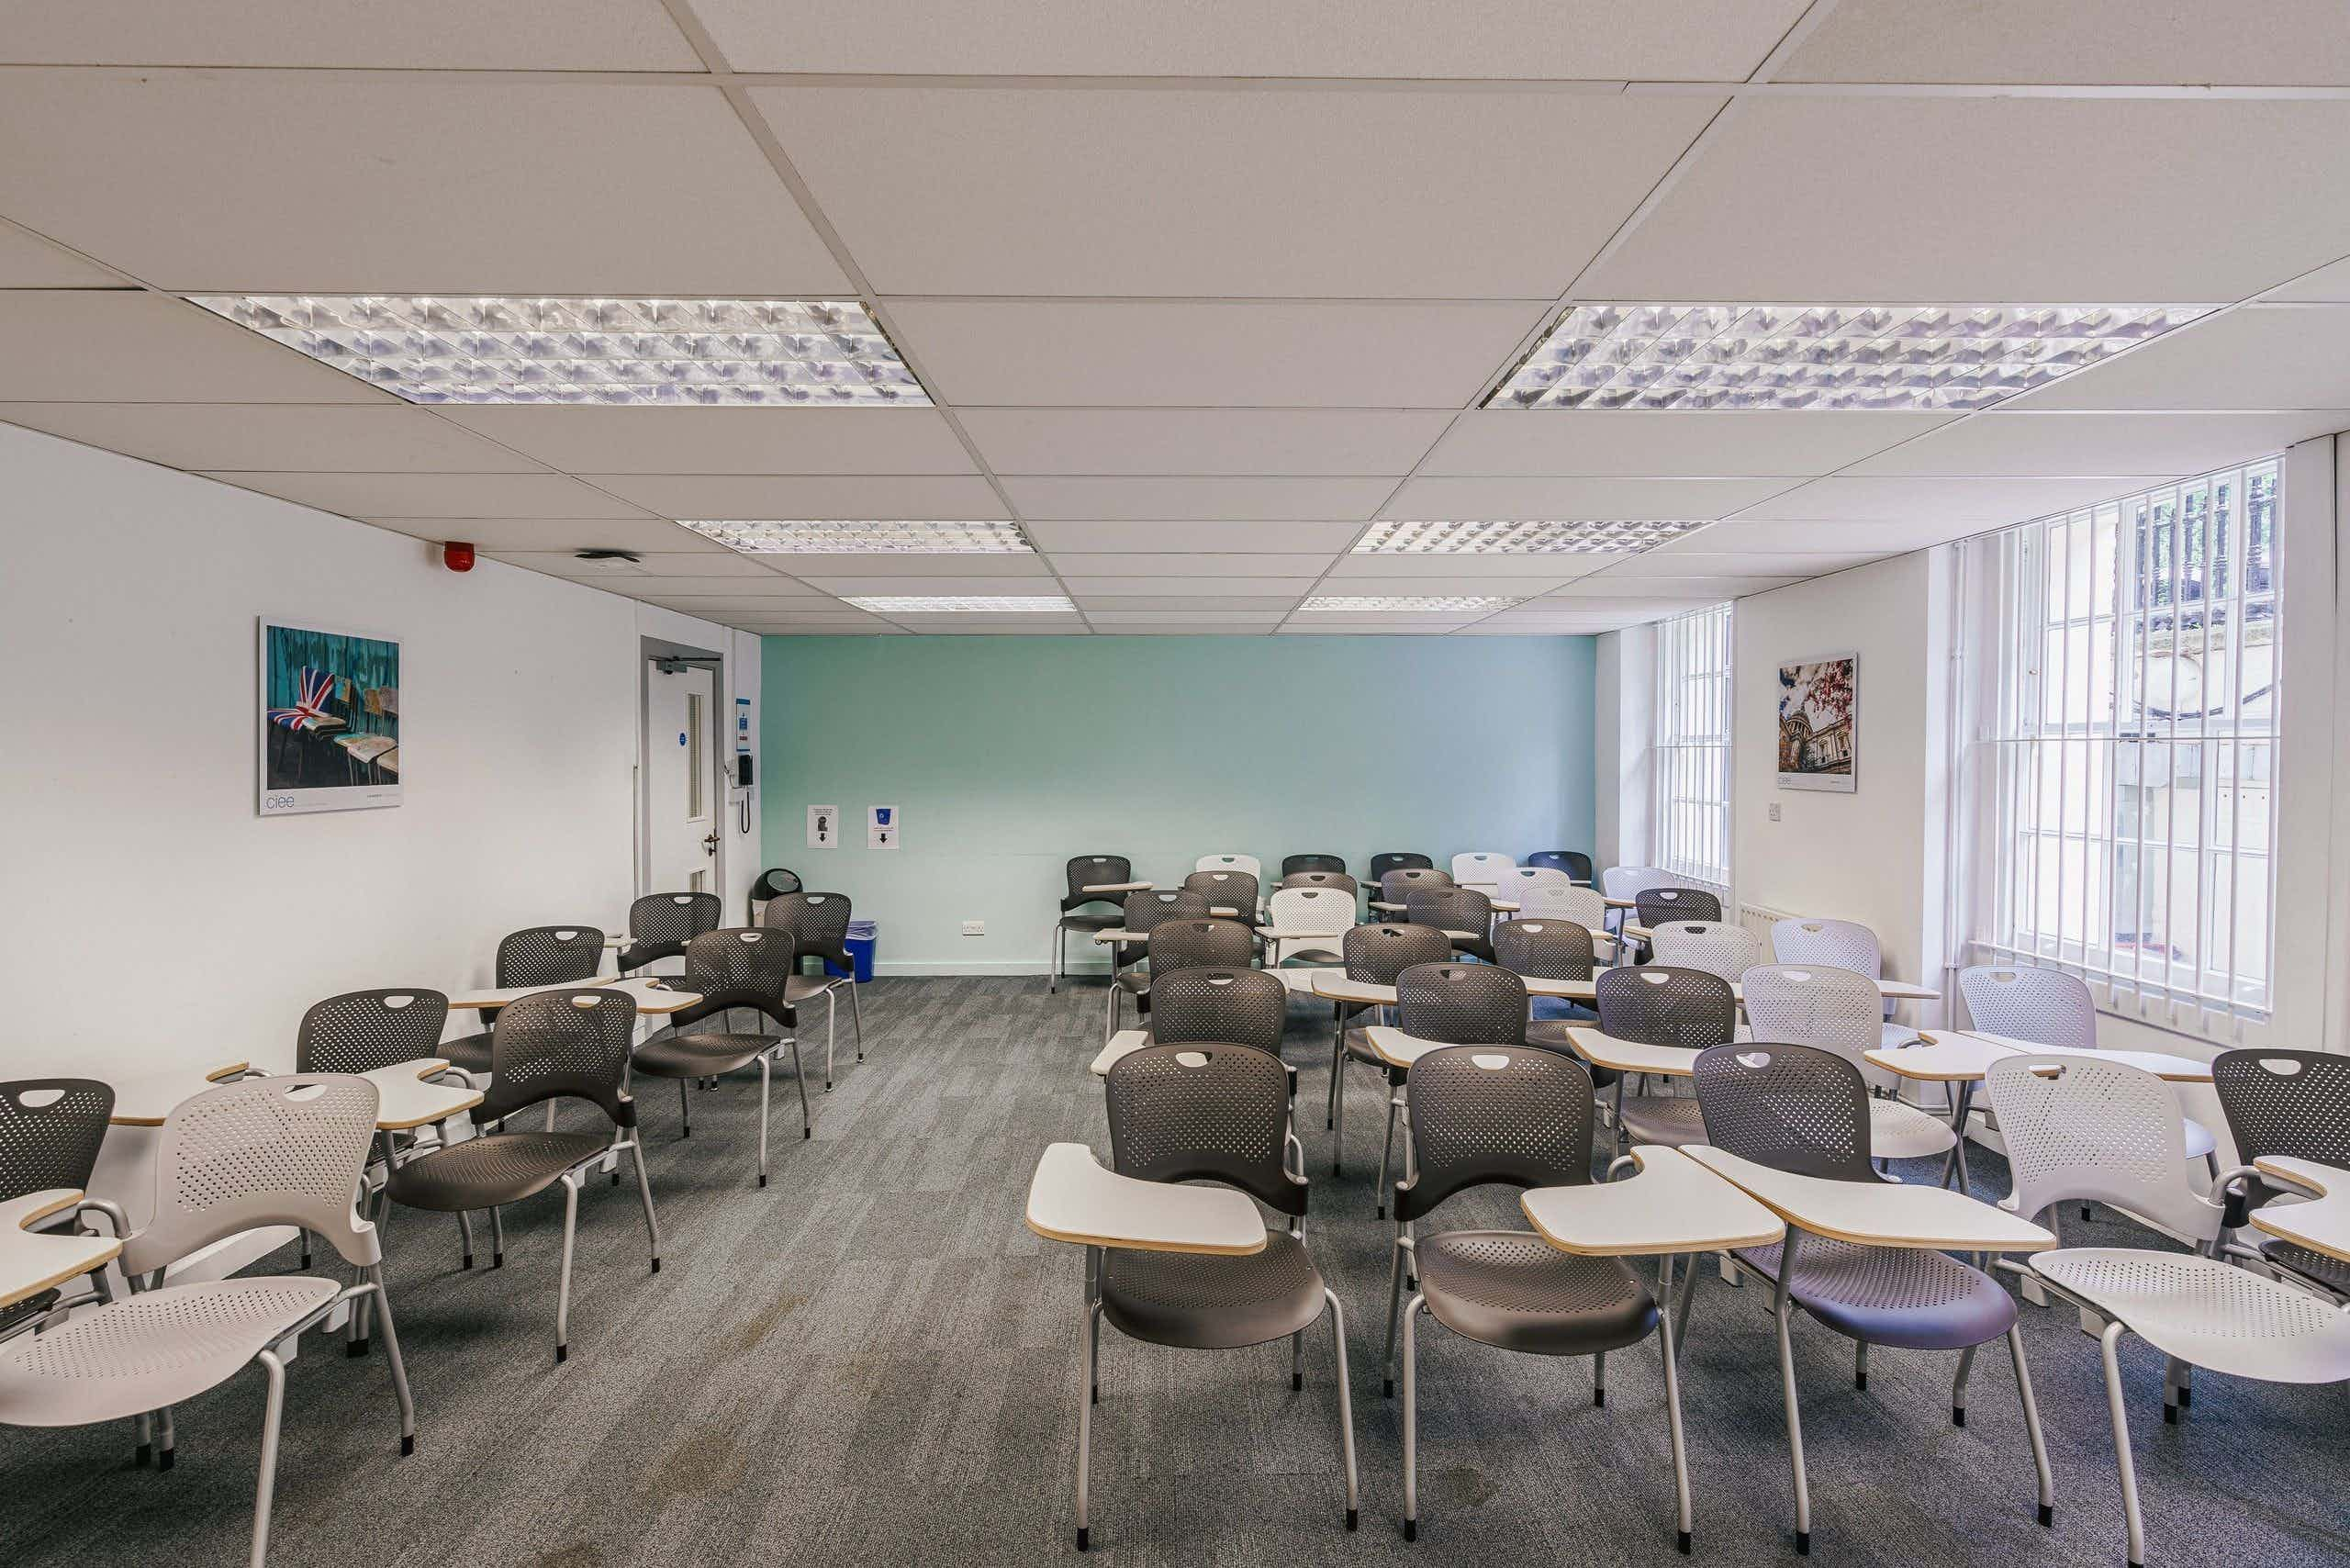 Mayfair meeting room, CIEE, Russell Square